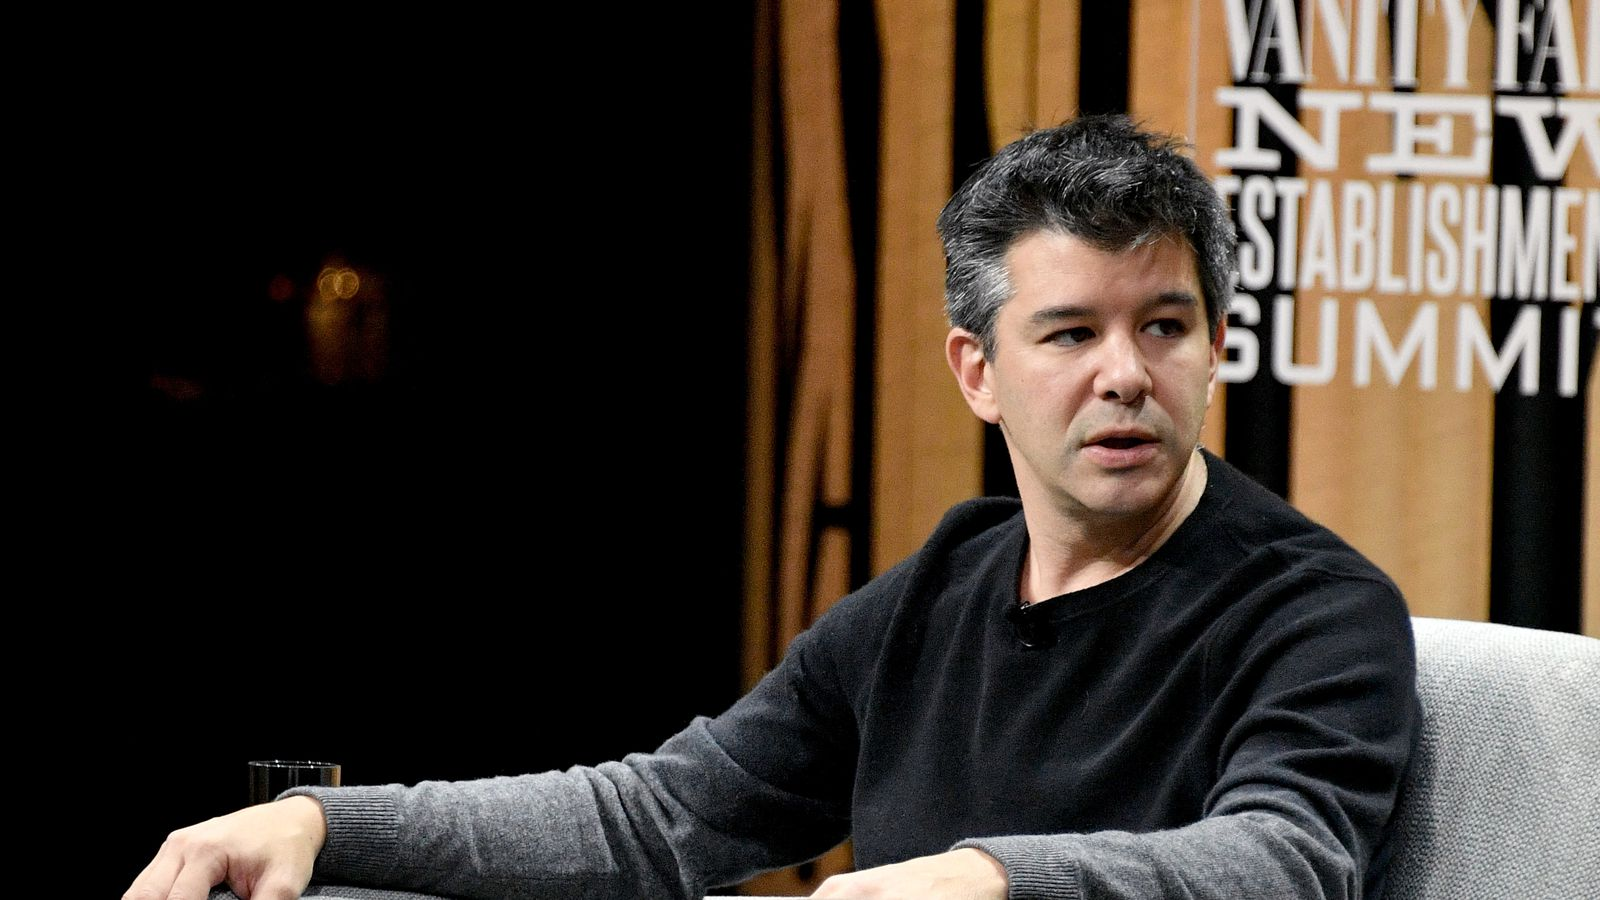 recode.net - Kara Swisher - Uber CEO Travis Kalanick says the company has hired former Attorney General Eric Holder to probe allegations of sexism